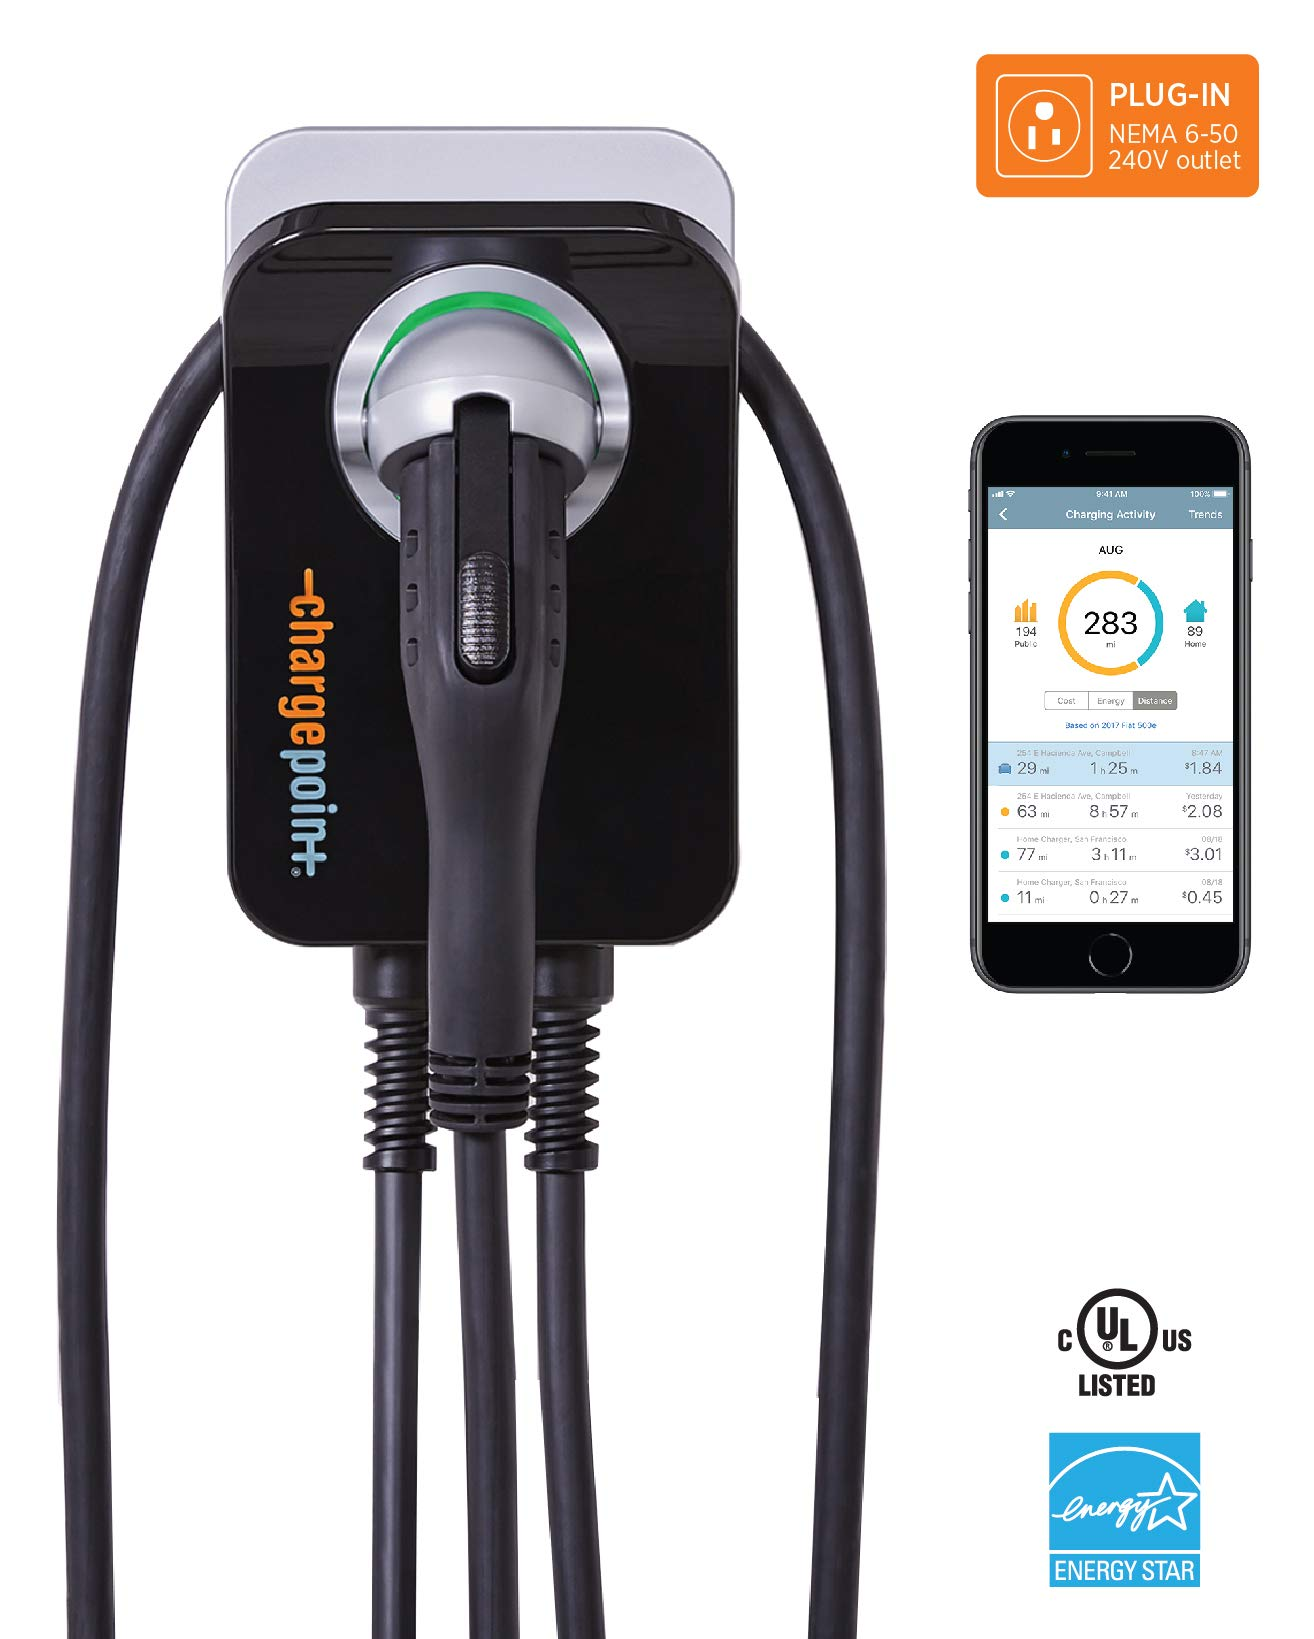 ChargePoint Home WiFi Enabled Electric Vehicle (EV) Charger - Level 2 240V EVSE, 32A Electric Car Charger for All EVs, UL Listed, ENERGY STAR Certified, Plug-in (uses NEMA 6-50 outlet), 25 Ft Cable